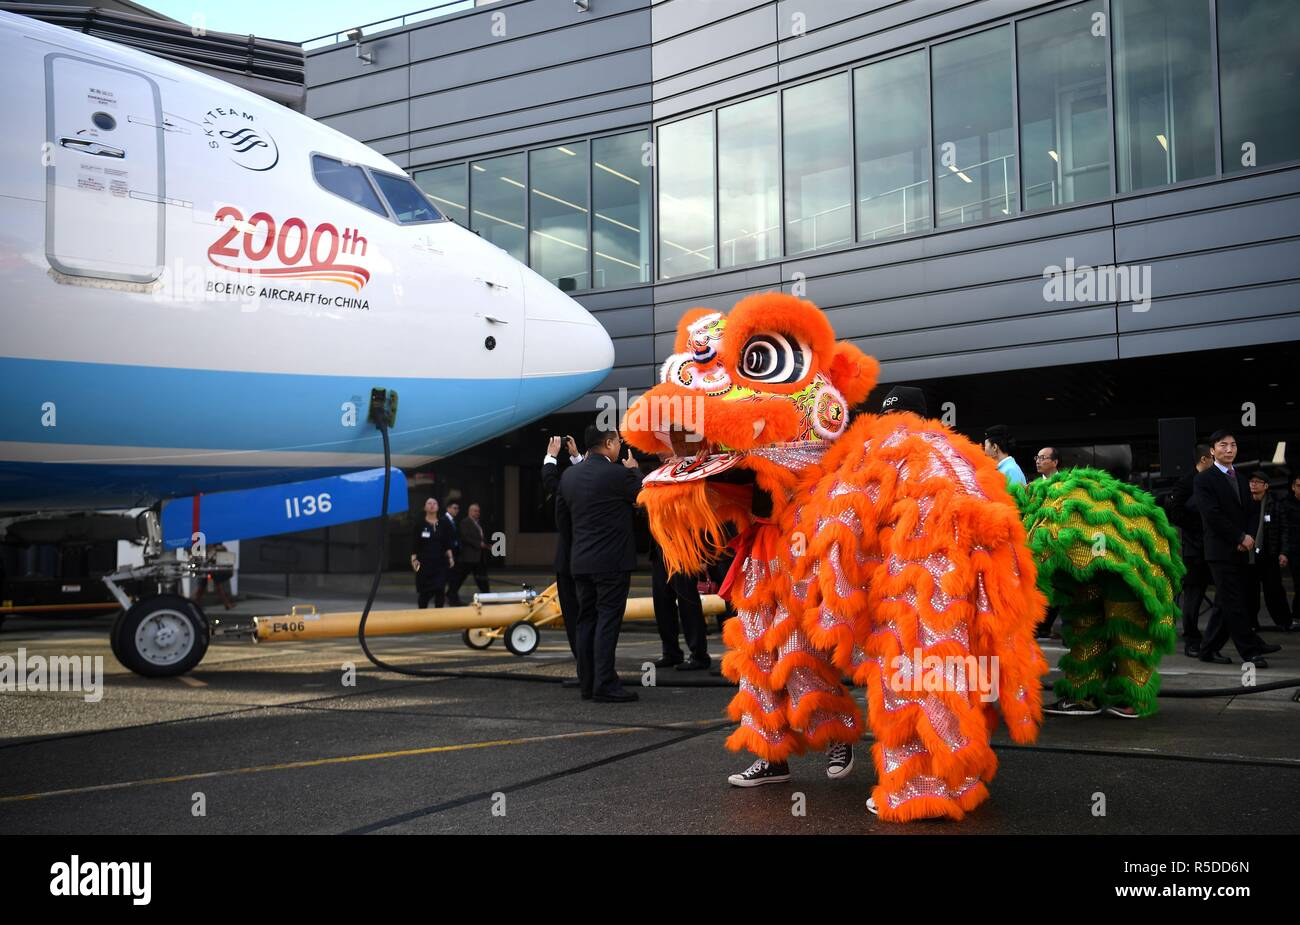 Seattle. 30th Nov, 2018. Photo taken on Nov. 30, 2018 shows the delivering ceremony of the 2,000th Boeing airplane to China in Seattle, the United States. Top U.S. aircraft manufacturer Boeing Company on Friday delivered its 2,000th airplane to China, which is a milestone for the U.S. aircraft maker in the world's largest commercial aviation market. Credit: Wu Xiaoling/Xinhua/Alamy Live News - Stock Image